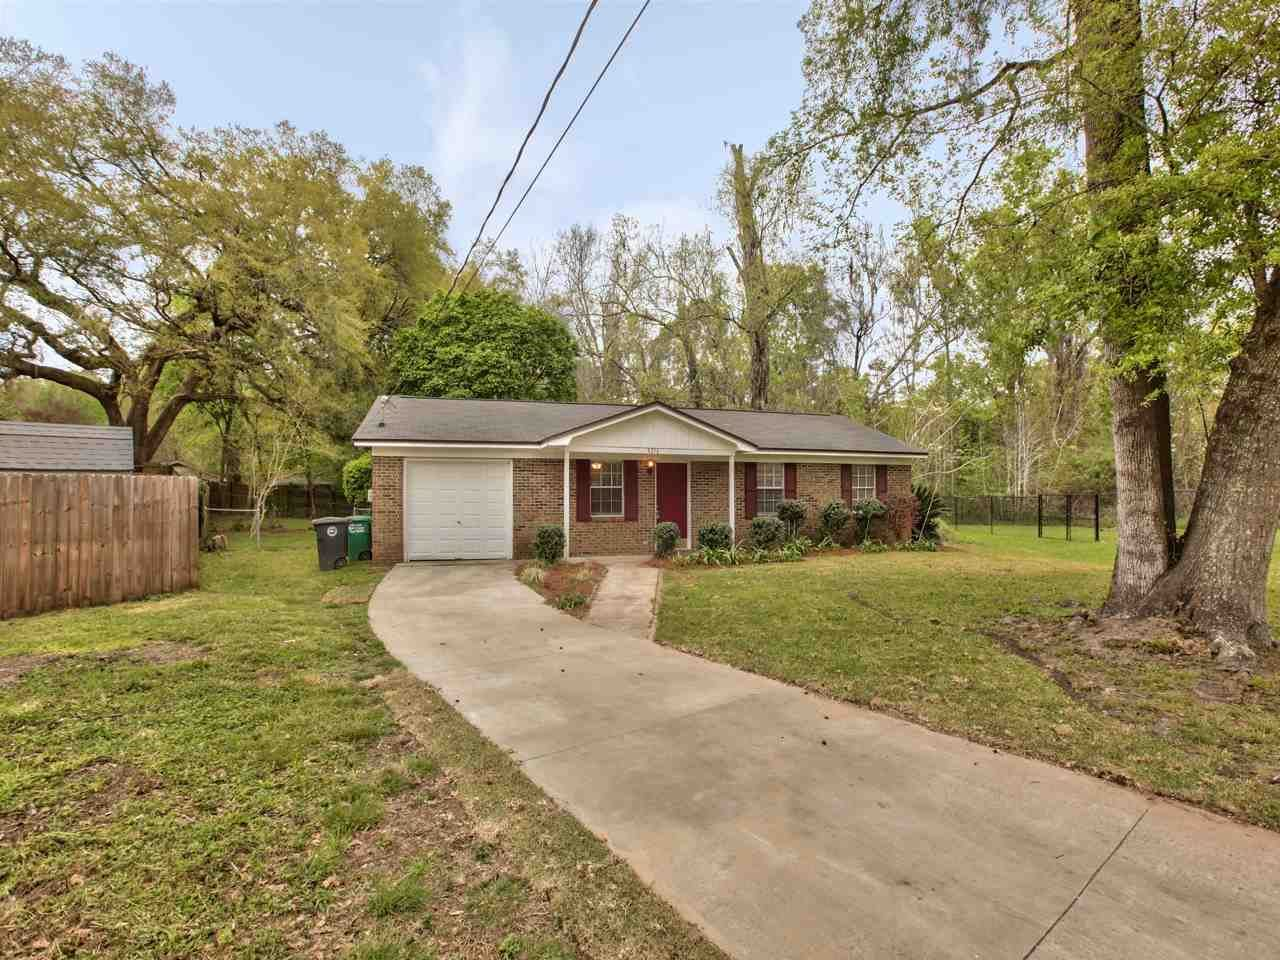 4256 Carrington Court, Tallahassee, FL 32301 - MLS#: 330167